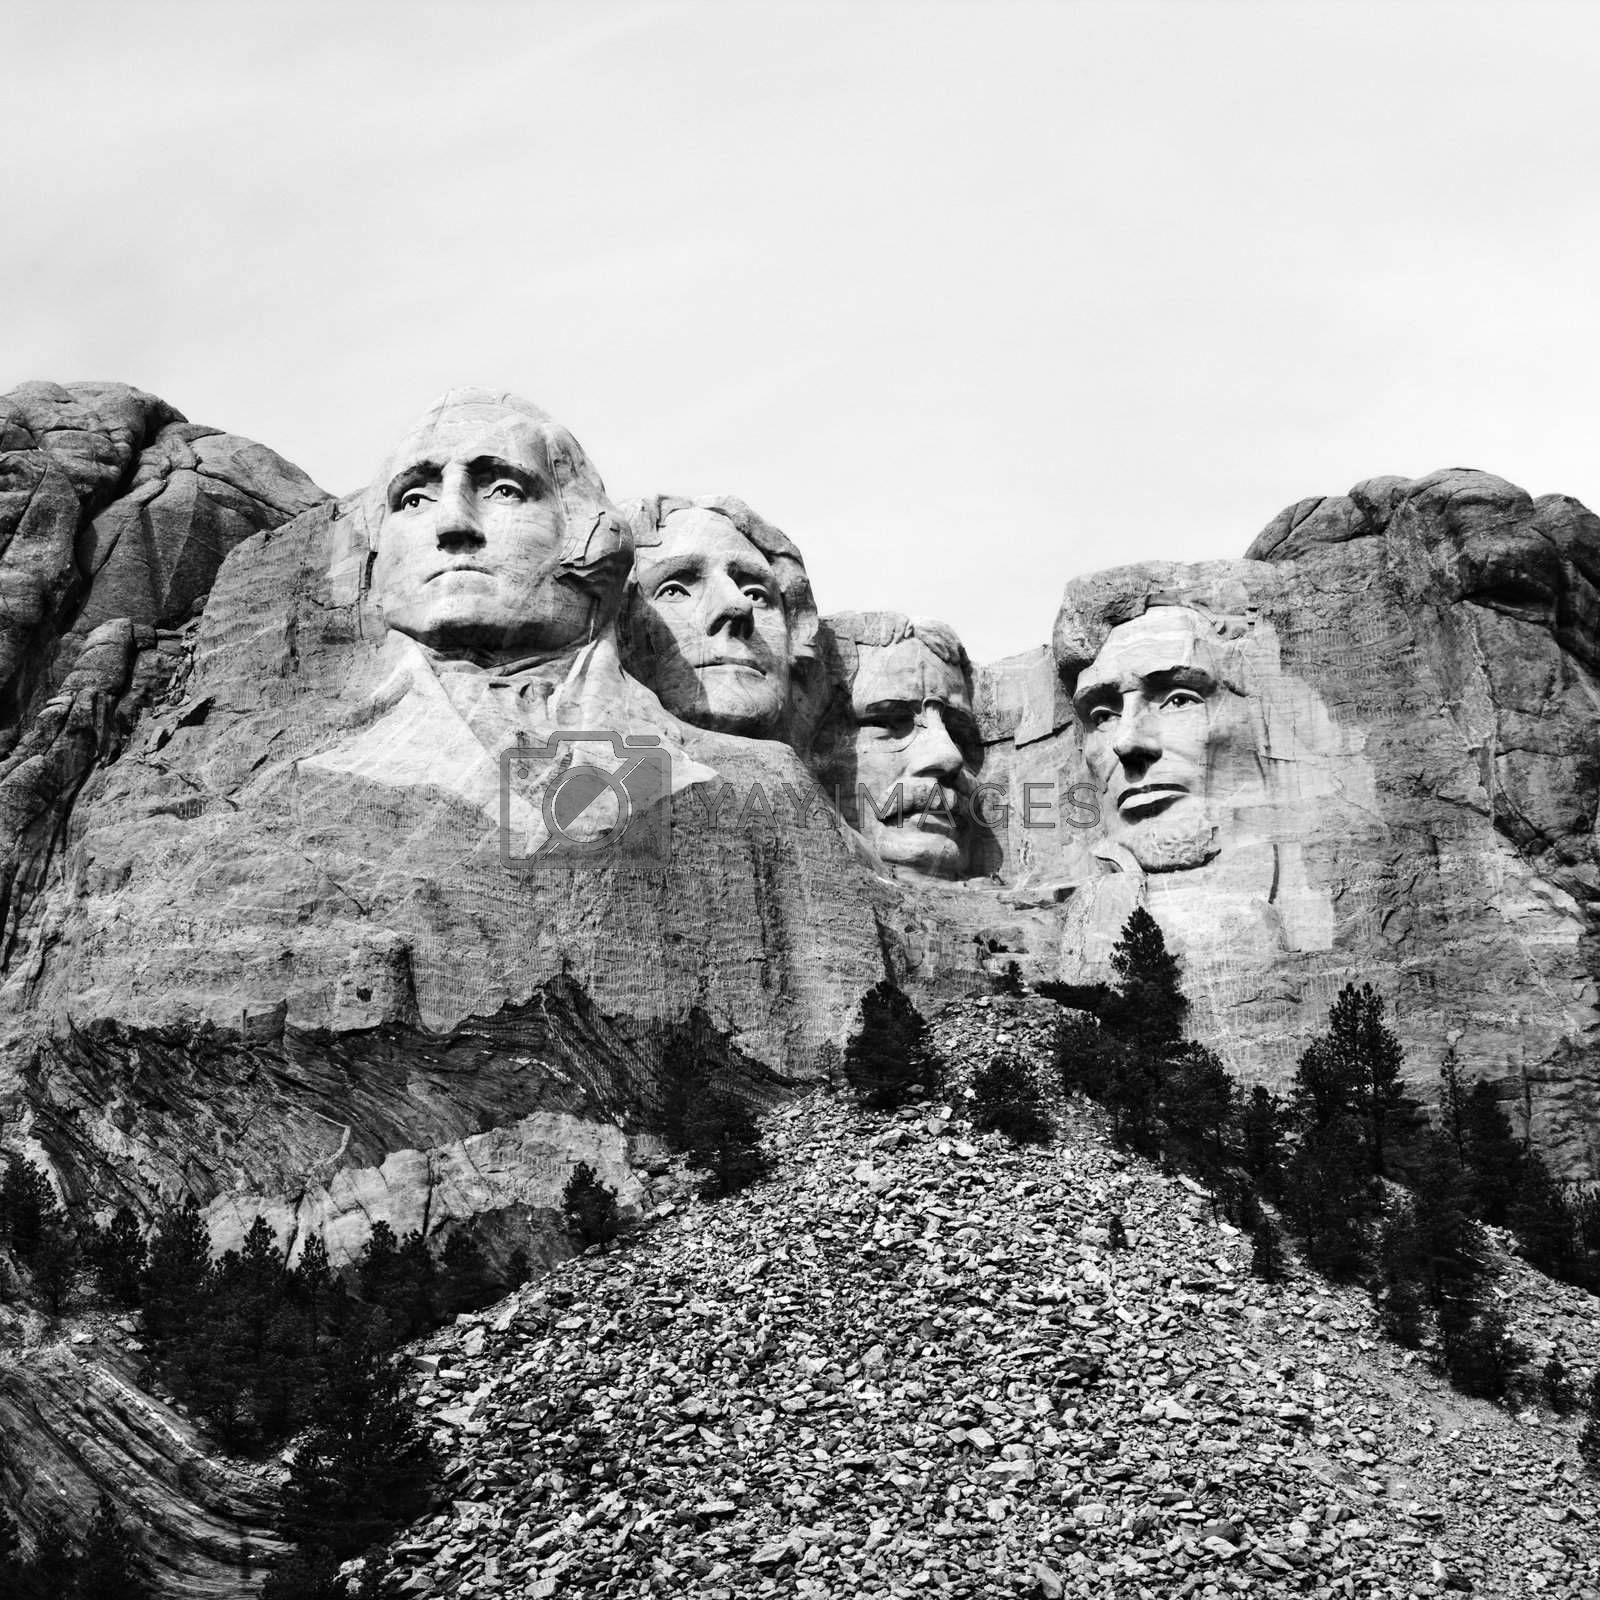 Black and white of Mount Rushmore National Monument, South Dakota.